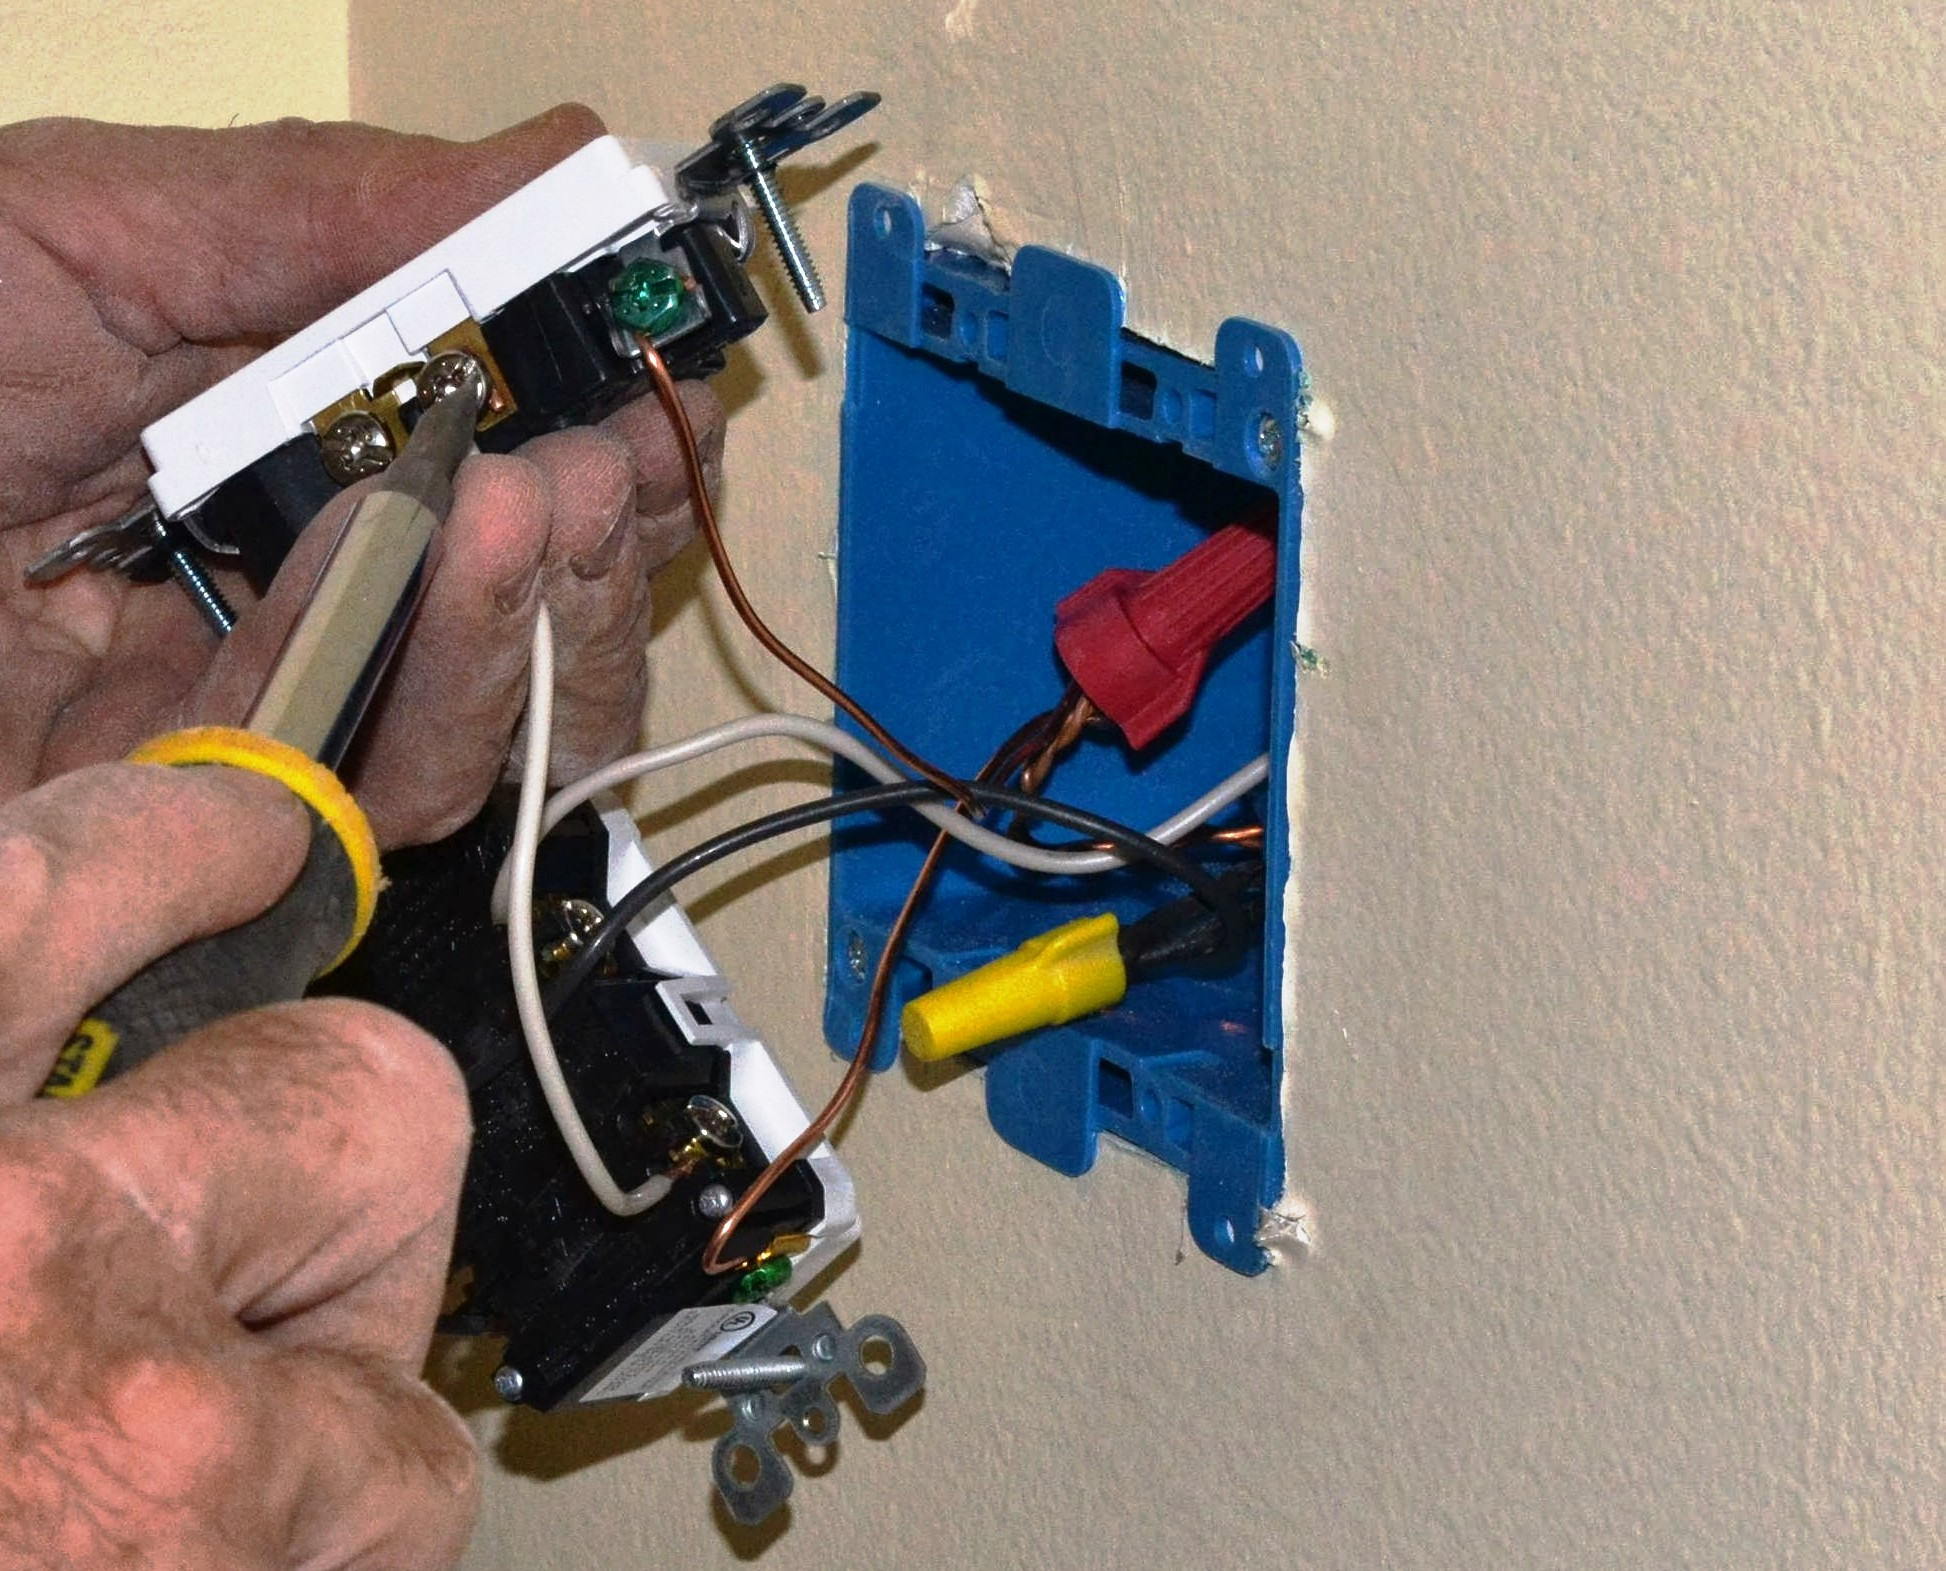 Converting A 2 Socket Outlet To 4 Sockets Pro Construction Guide Wiring Double Duplex Plug Cut Two More Pigtails